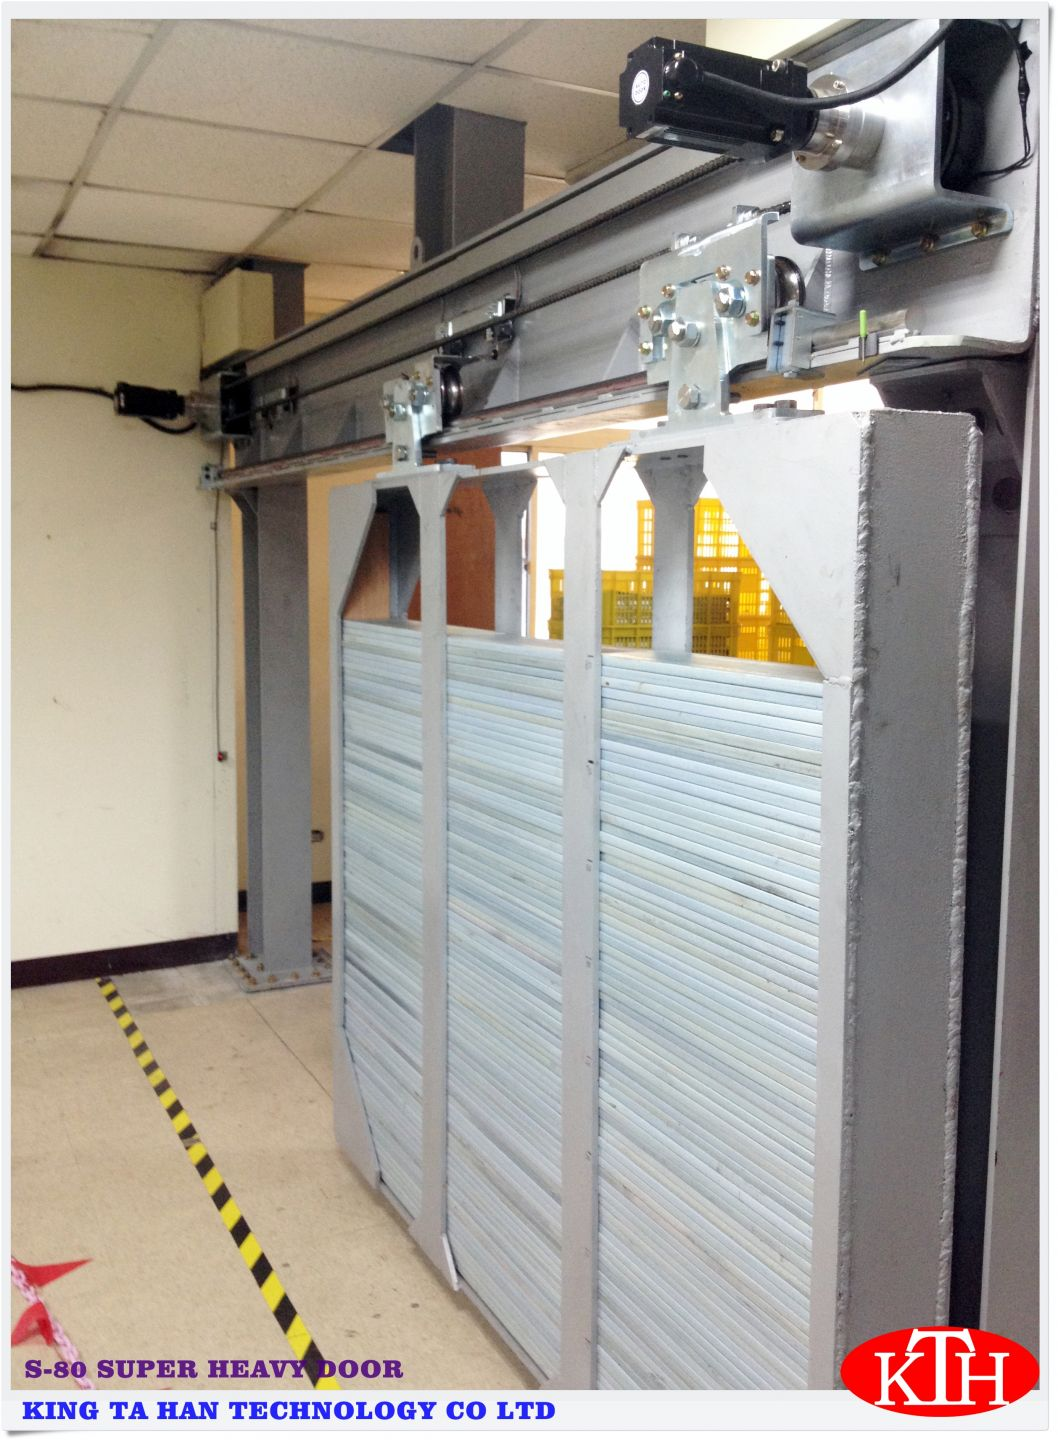 【New】Super Heavy Door With Quality, Safety And Practicality.